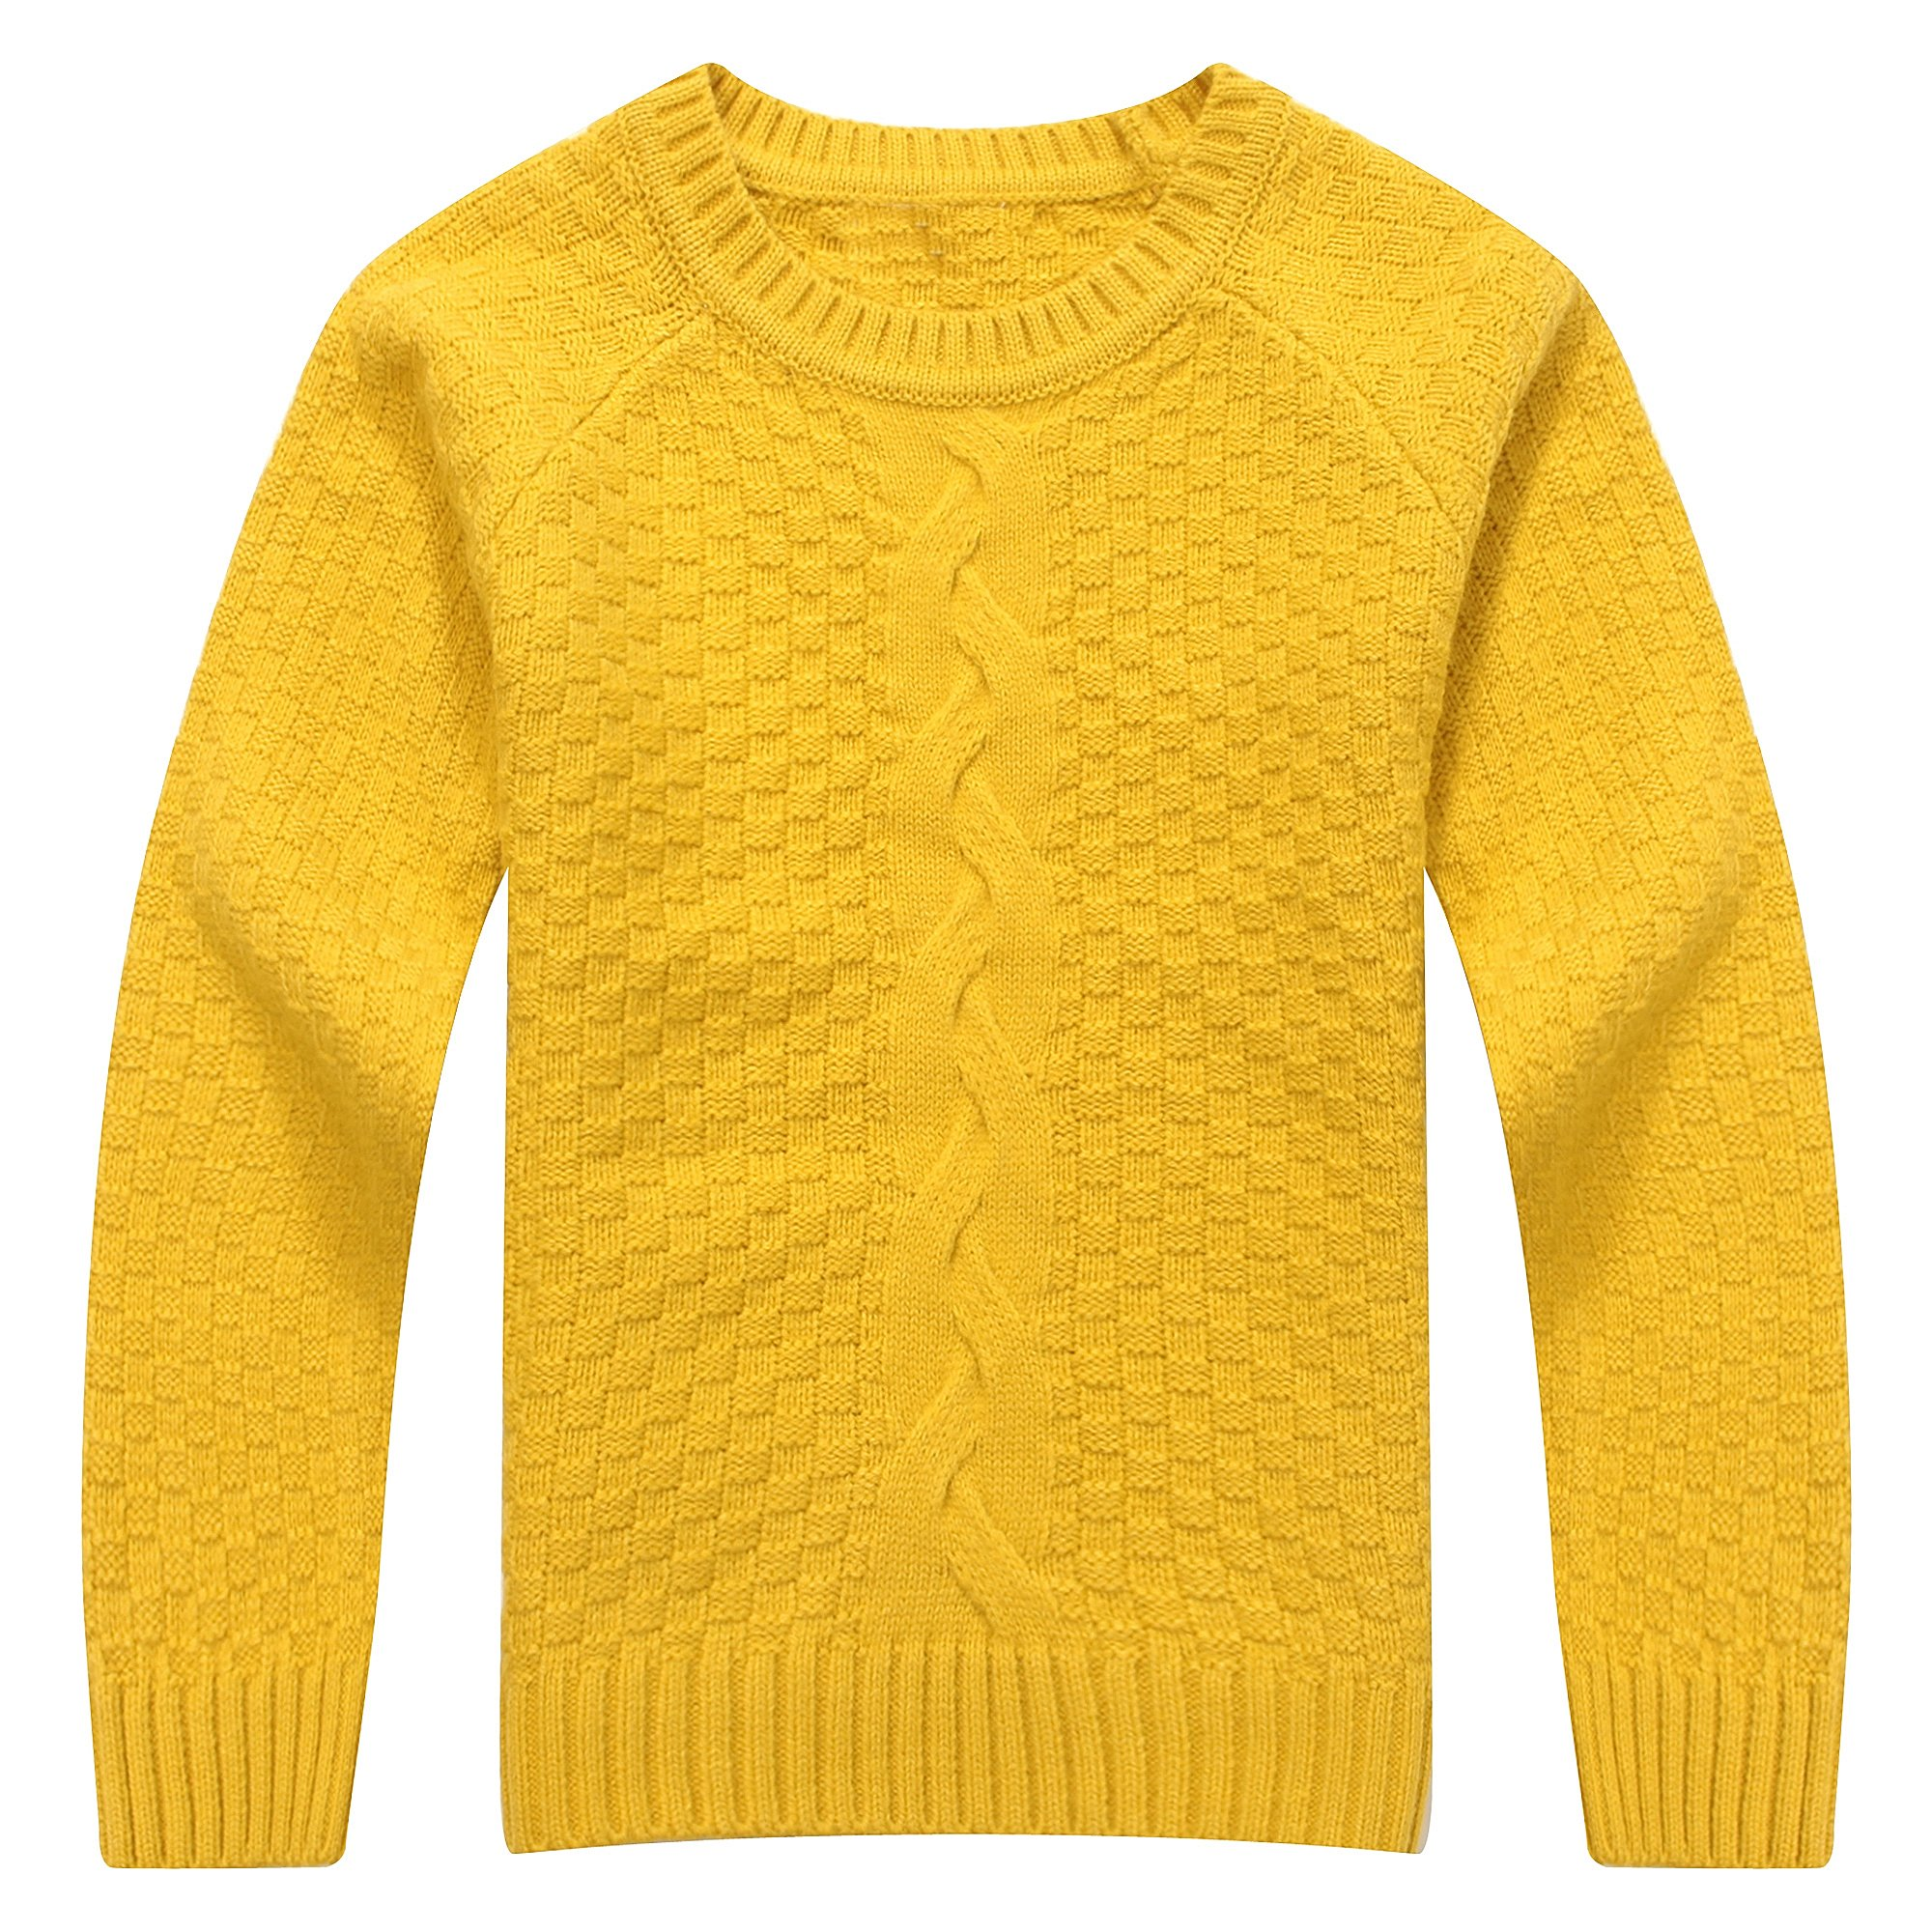 Richie House Little Girls' Classic Solid Color Sweater RH1422-B-2/3